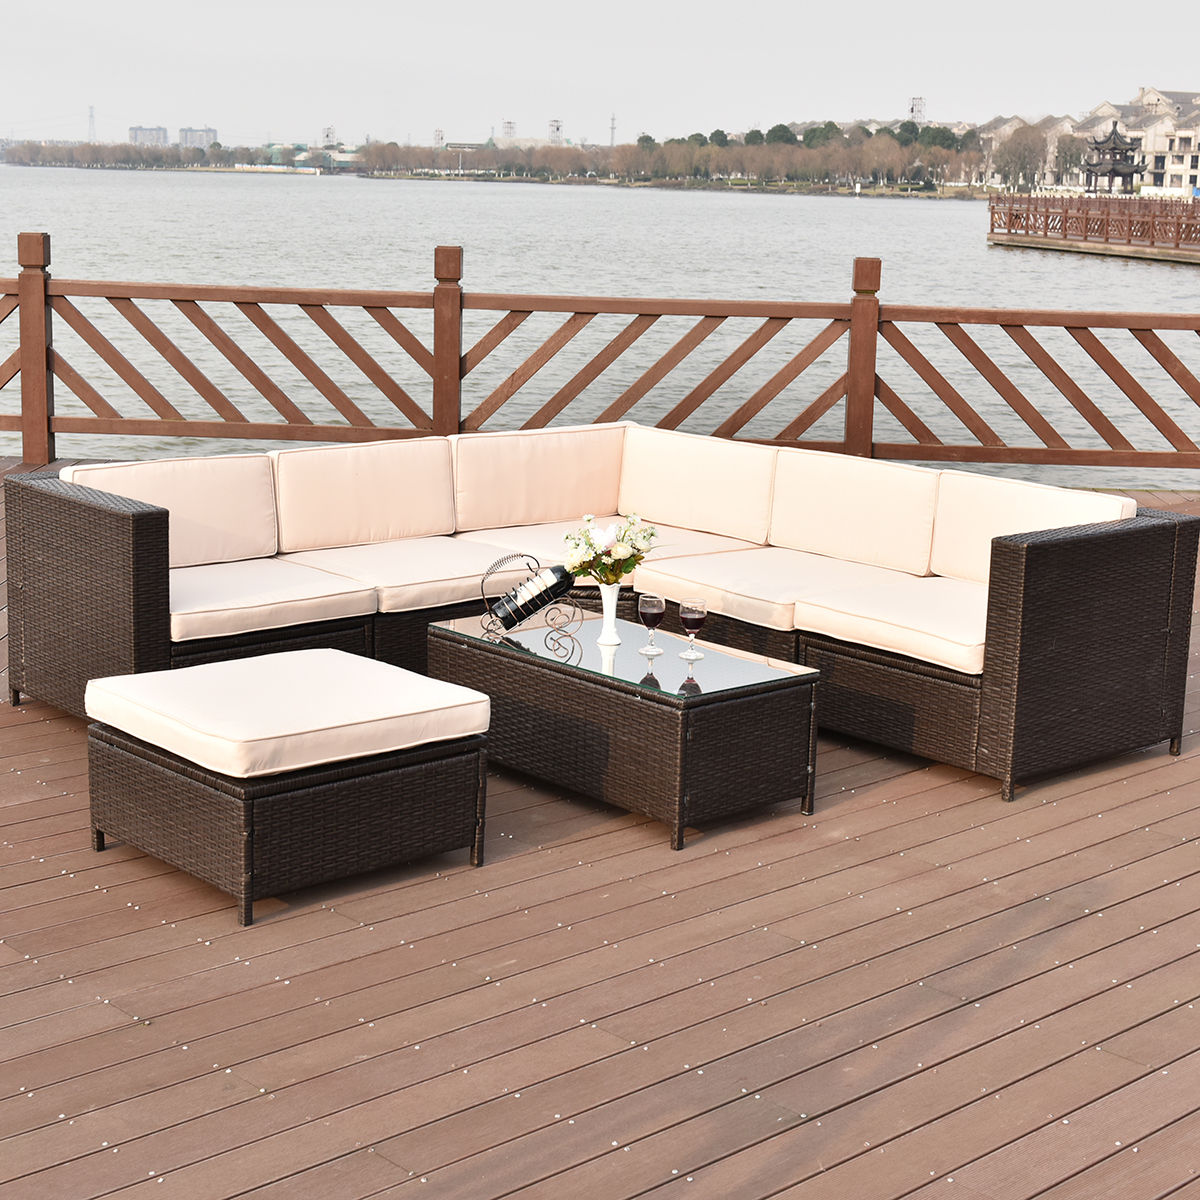 Costway 7 PCS Outdoor Rattan Wicker Furniture Set Sectional Cushioned Seat  Garden Patio